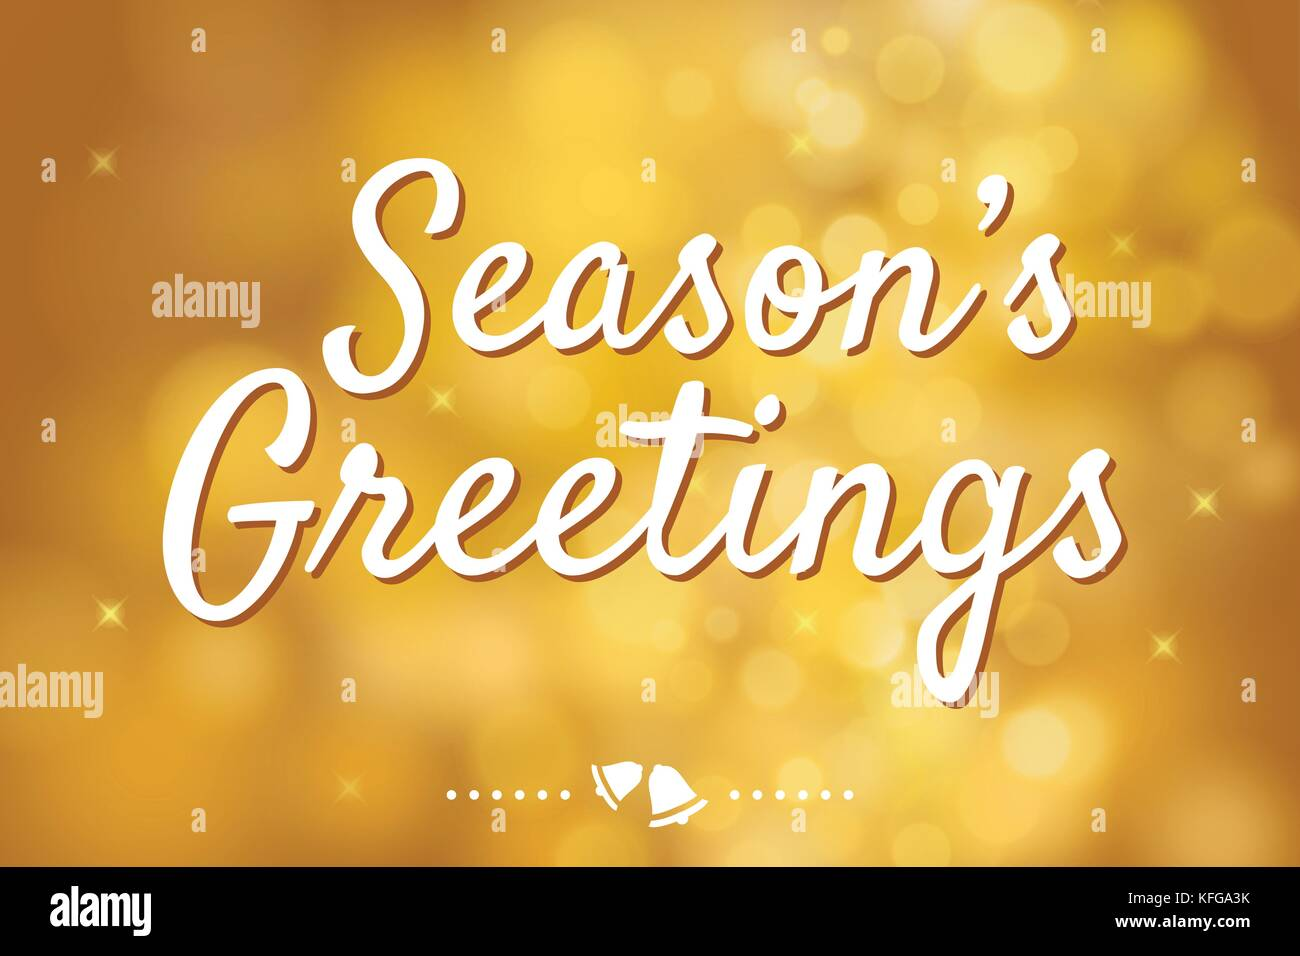 Seasons greetings banner stock photos seasons greetings banner seasons greetings with gold bokeh background for christmas theme stock image m4hsunfo